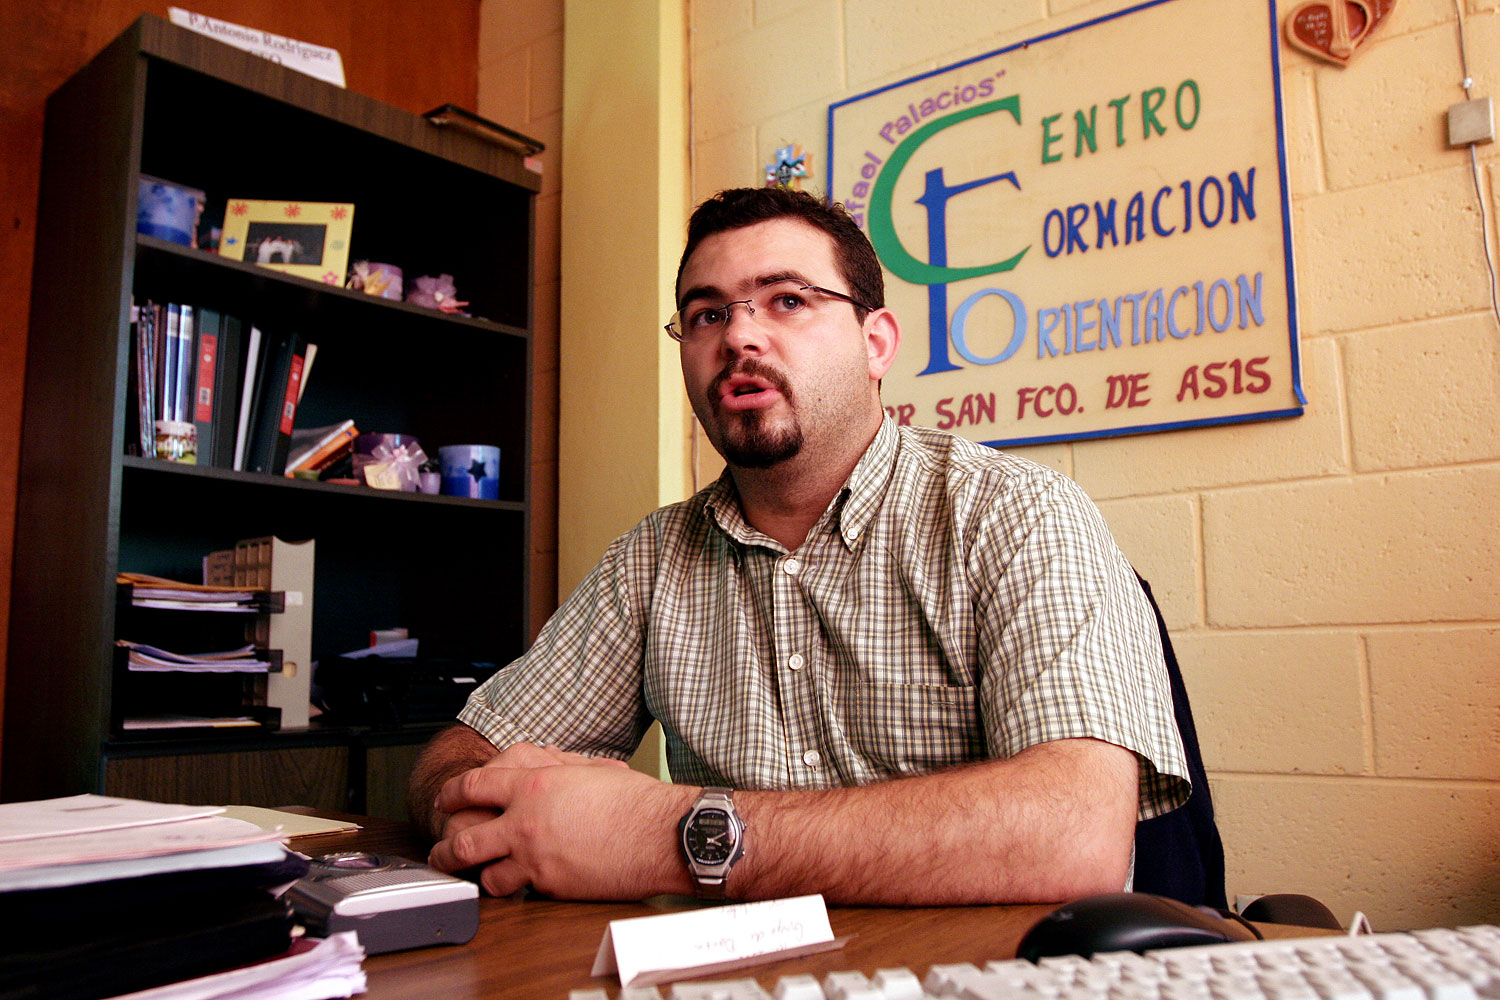 In this Tuesday Oct. 24, 2006 file photo, Roman Catholic priest Antonio Rodriguez Tercero explains the function of the youth center in the San Salvador suburb Mejicanos, El Salvador.